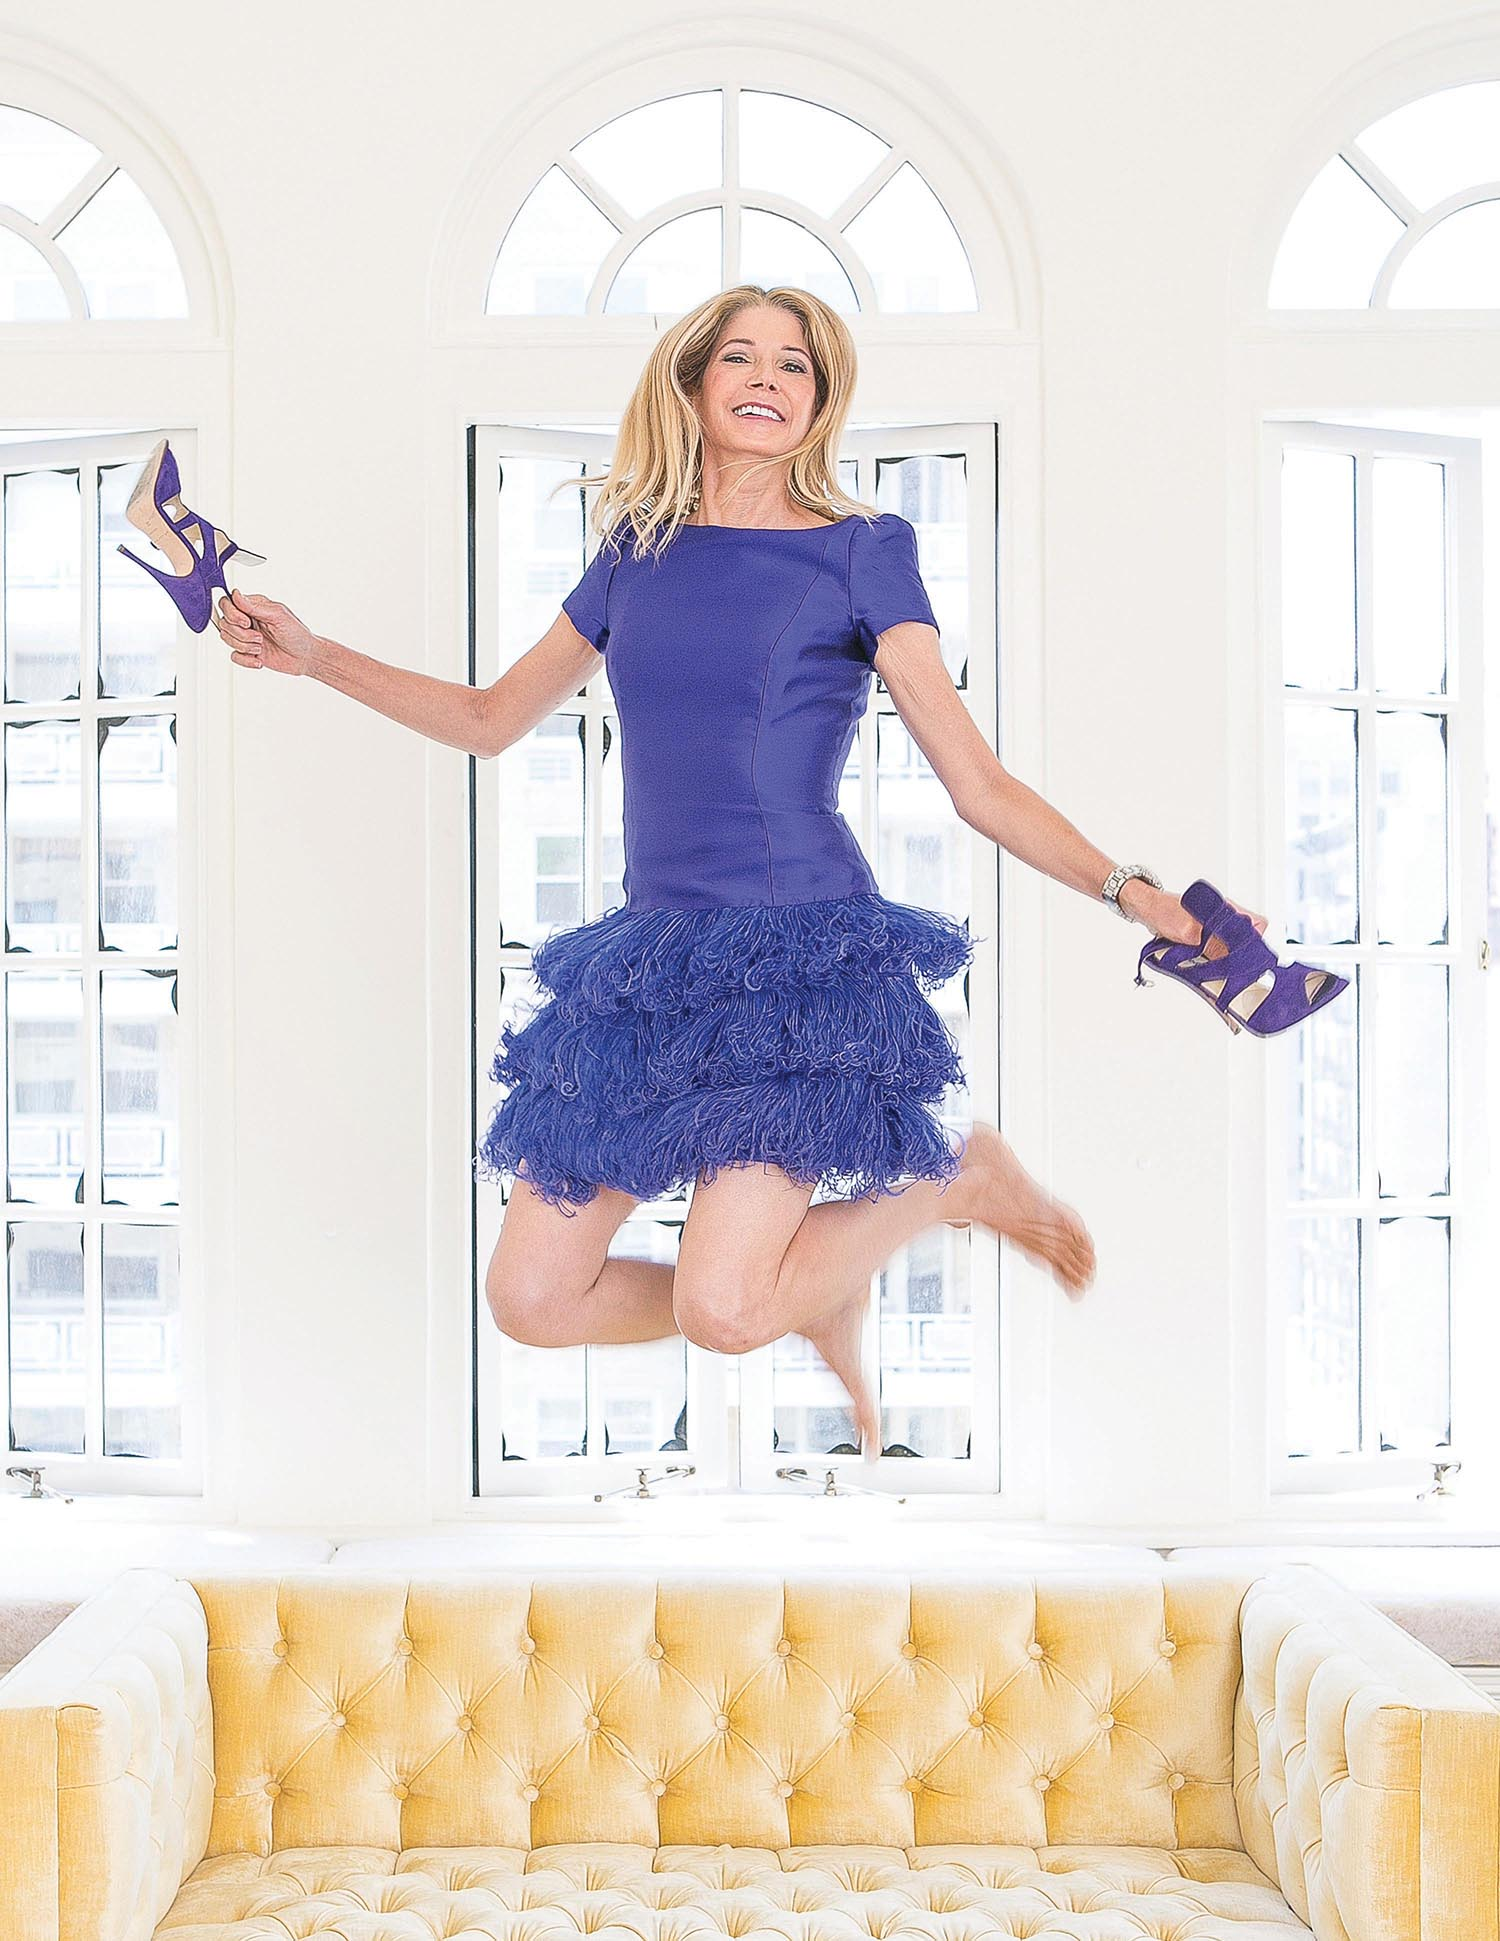 Candace Bushnell in her favorite purple dress.